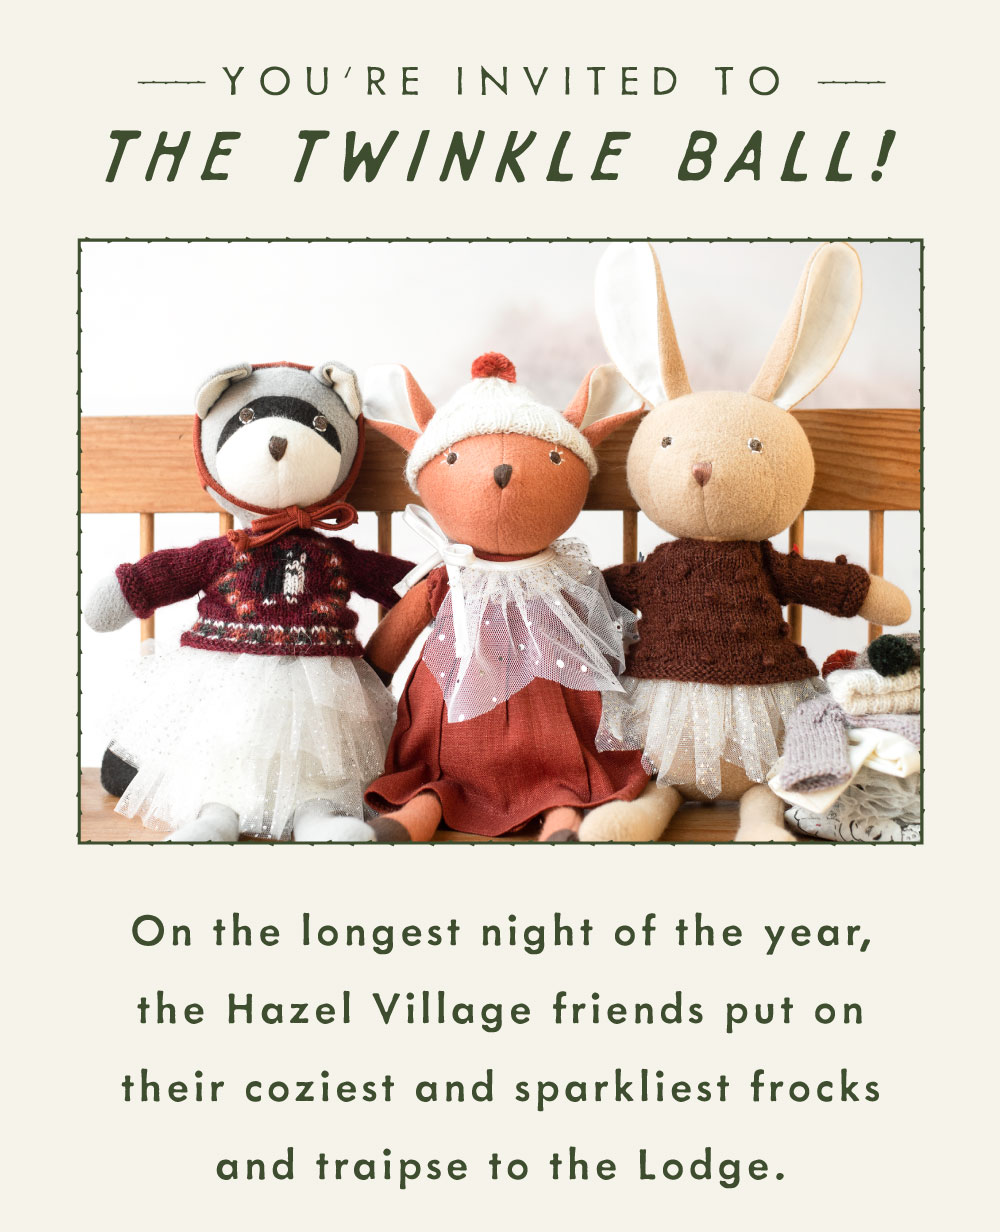 You''re invited to the Twinkle Ball! On the longest night of the year, the Hazel Village friends put on their coziest and sparkliest frocks and traipse to the Lodge.